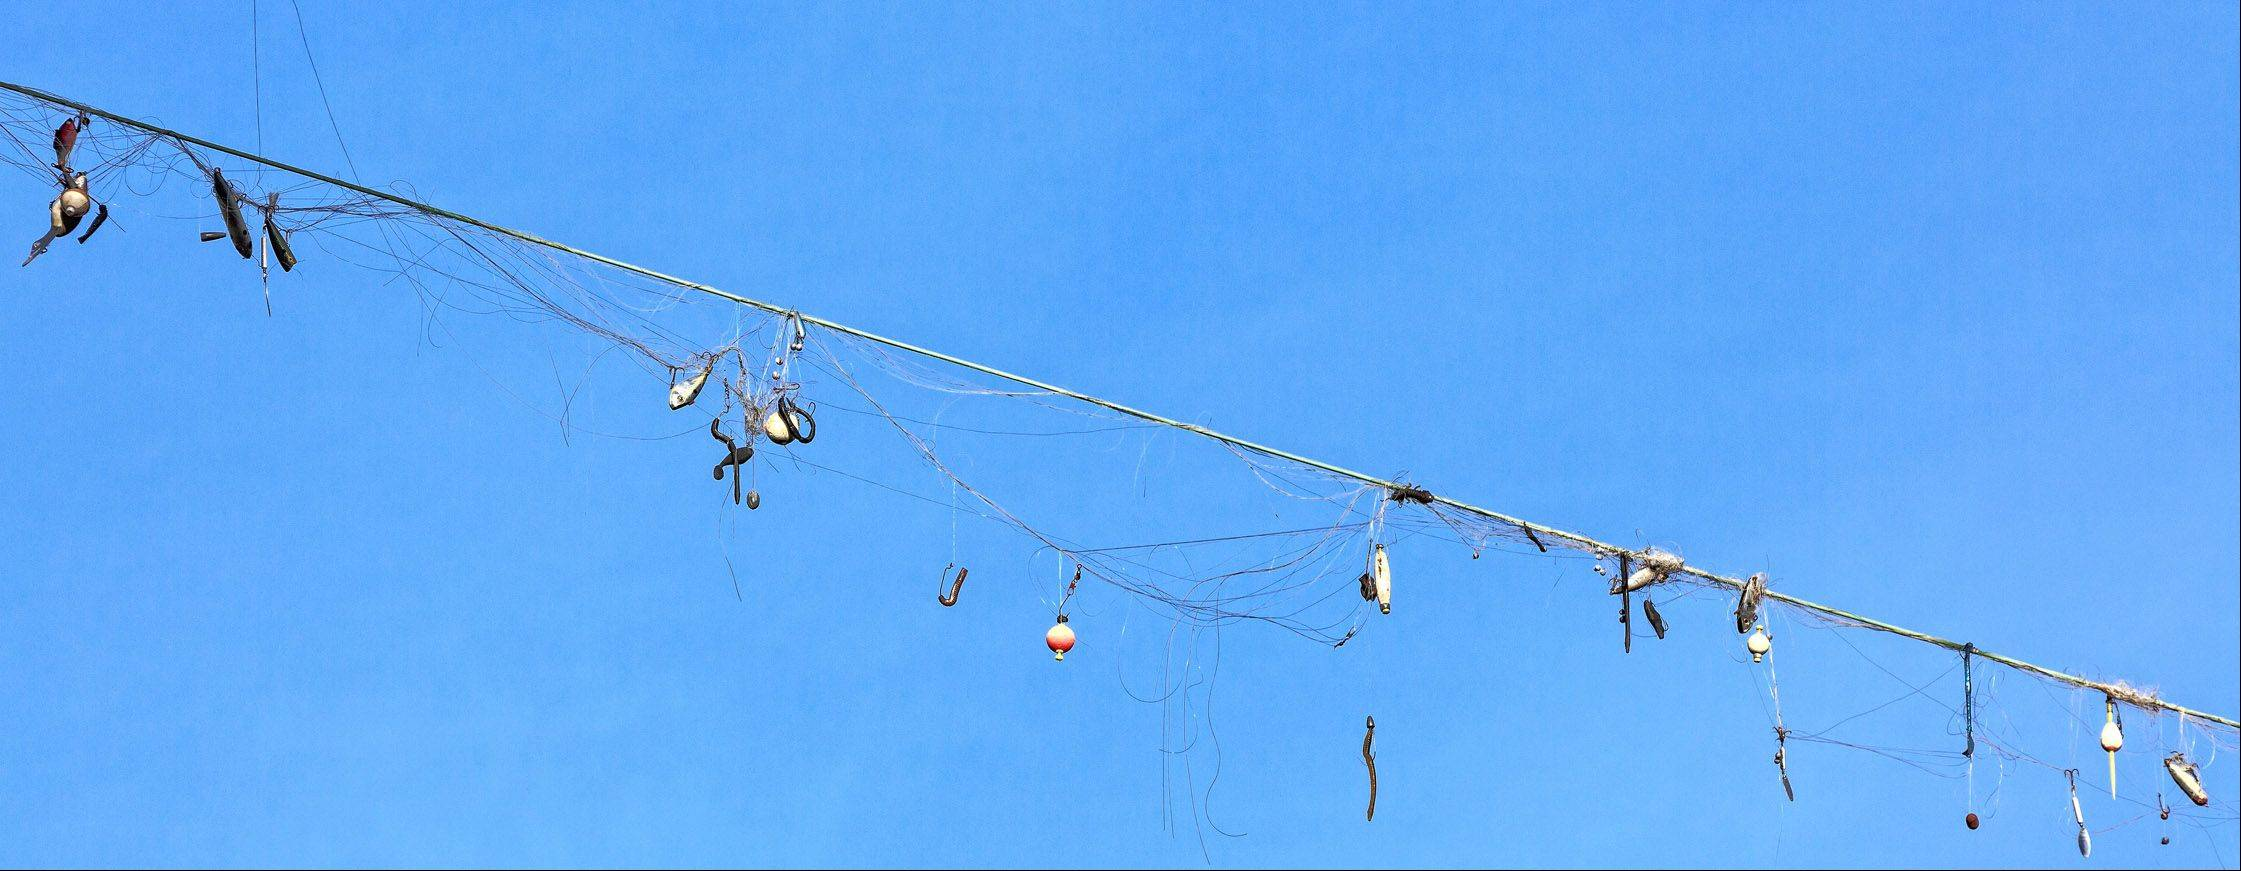 This is a bunch of fishing lures and lines tangled on a telephone wire at Lake Johnson Park in Raleigh, North Carolina on December 29th.